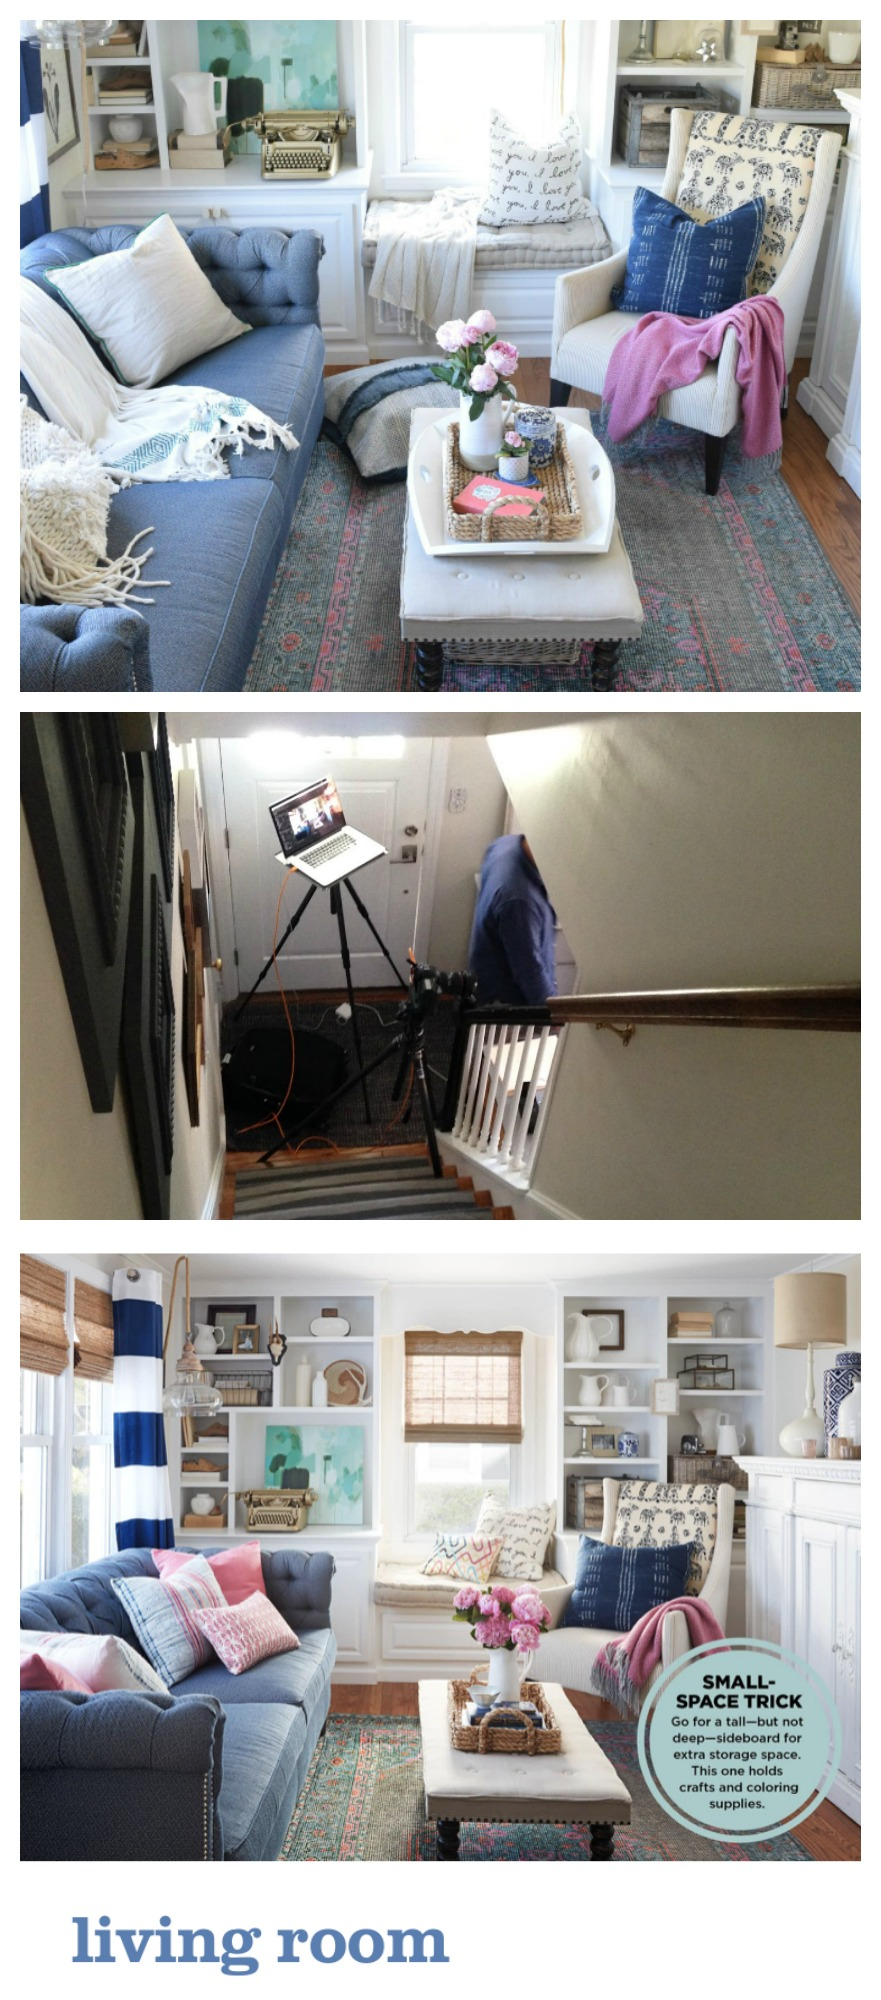 Behind the Scenes of an HGTV Magazine Shoot